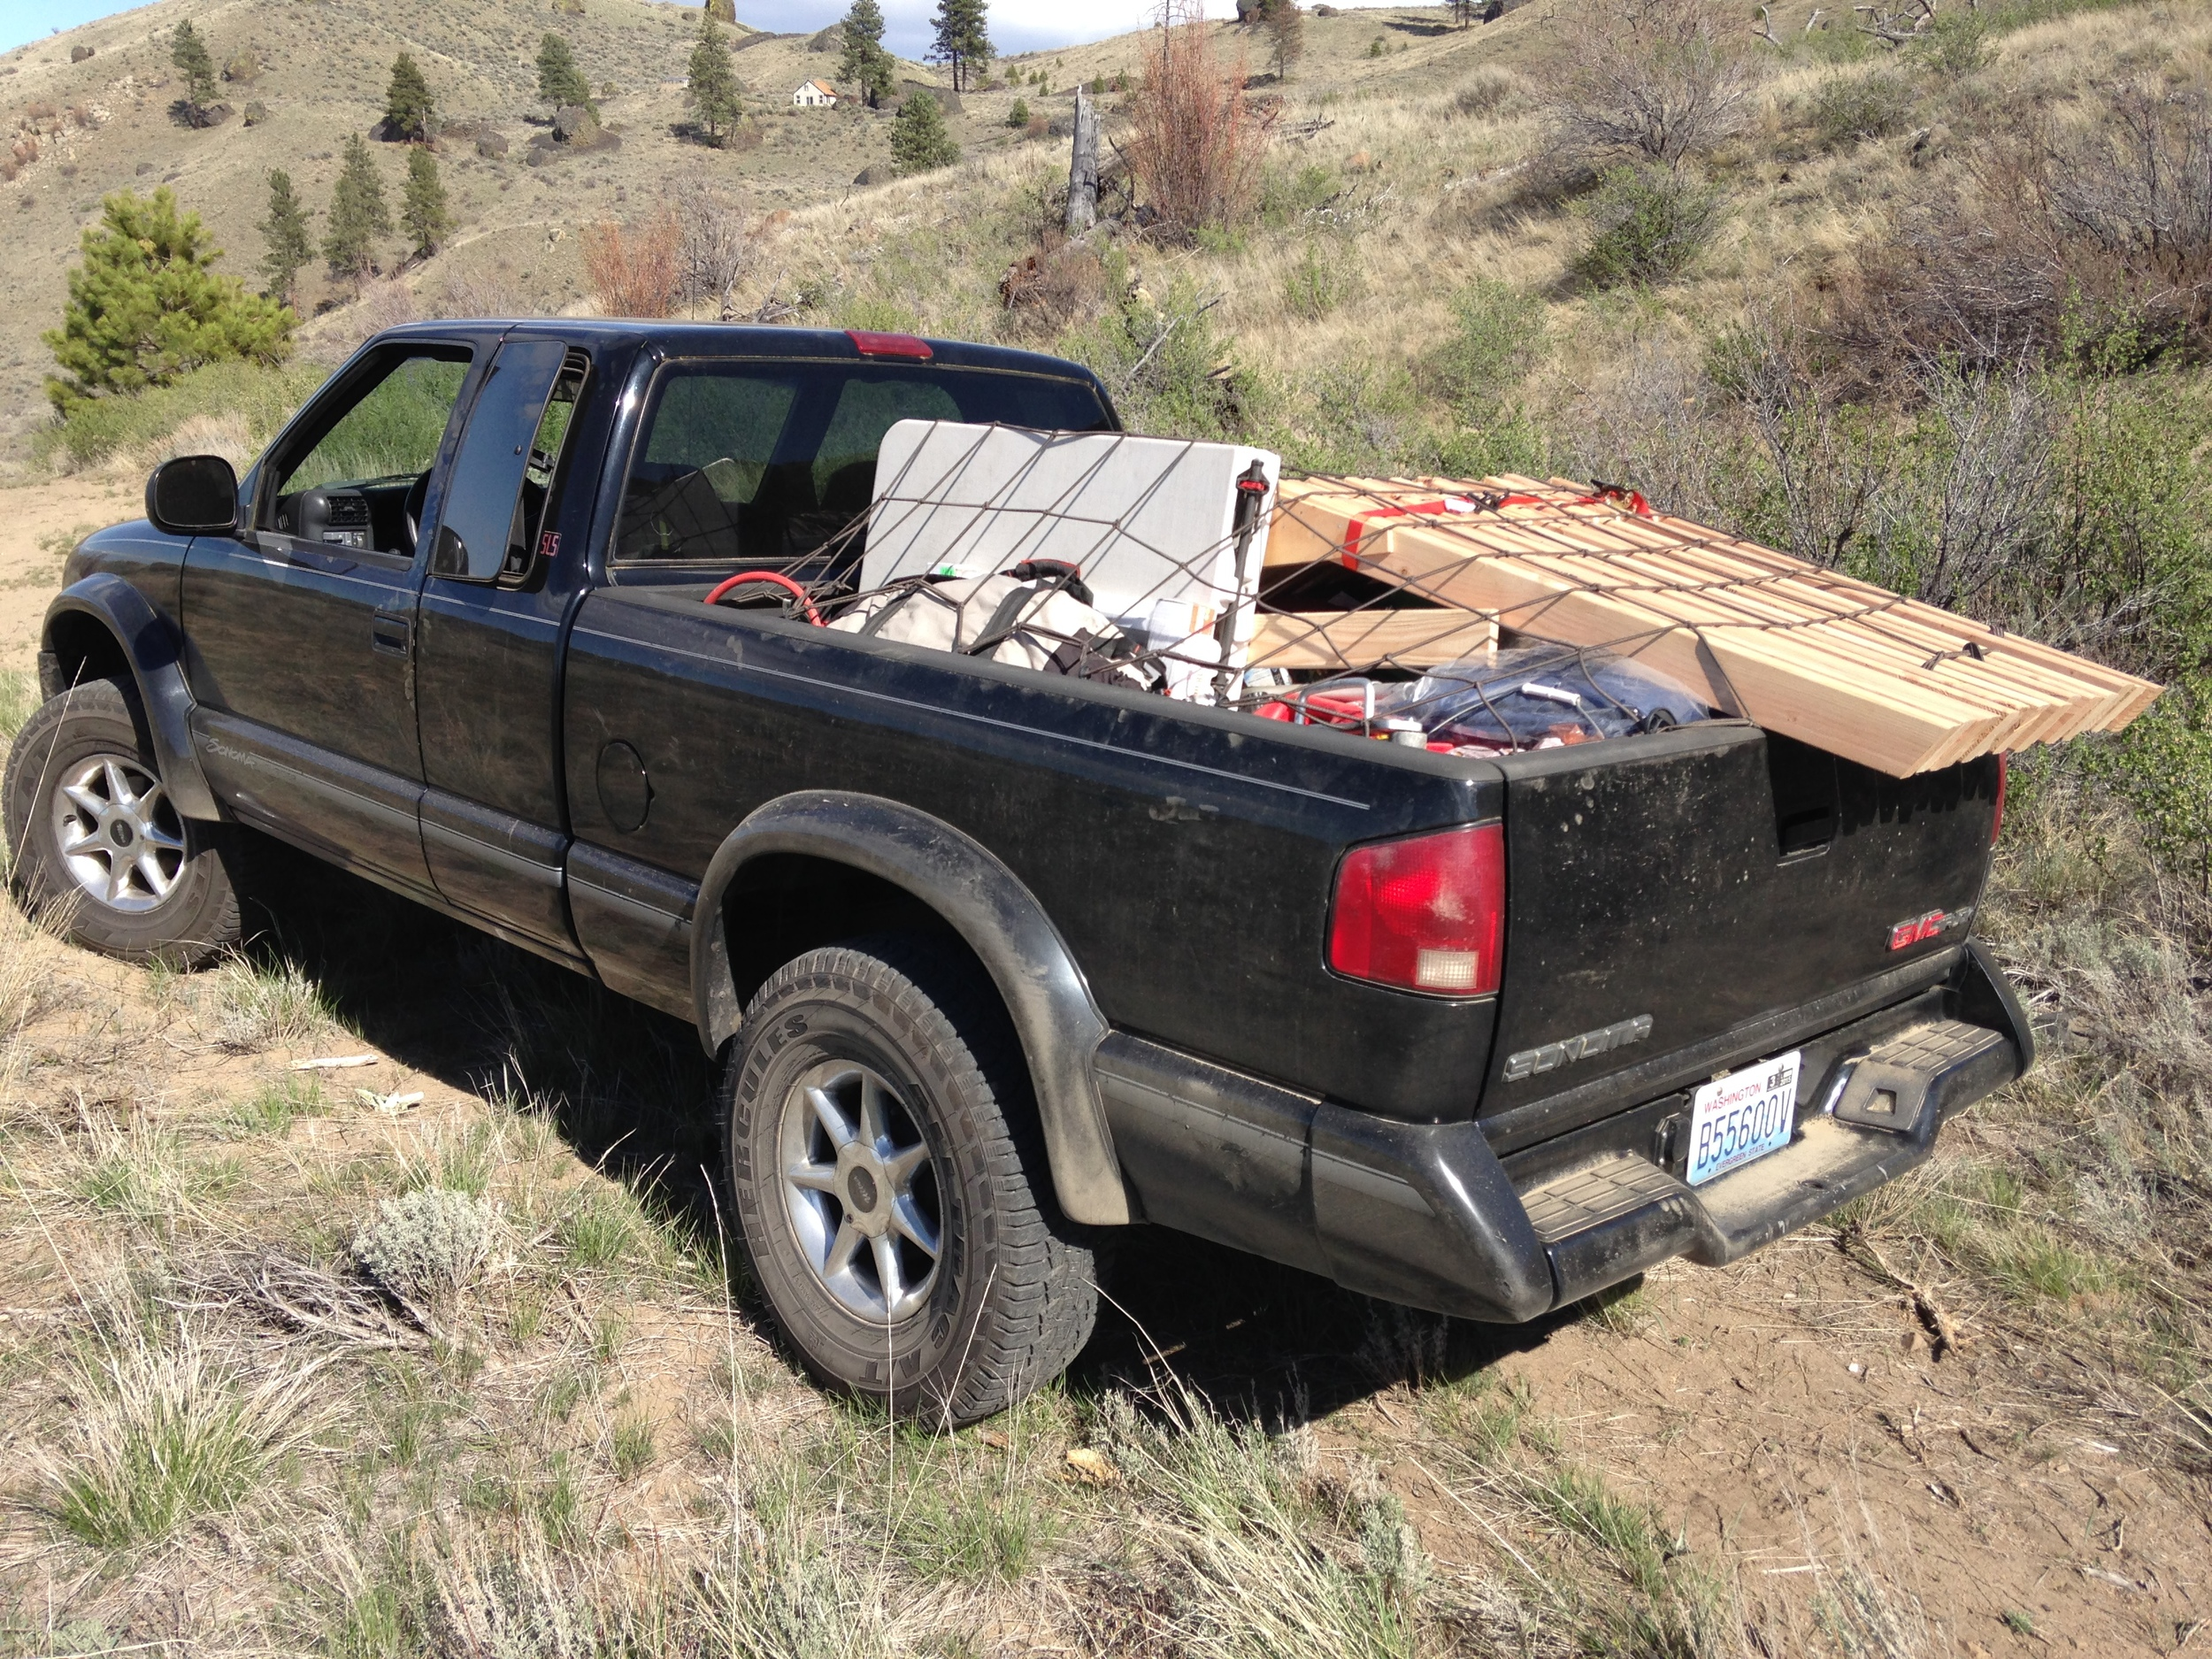 Meet Cody, our '96 GMC Sonoma (and a sneak peek of our first trip to build the cabin).